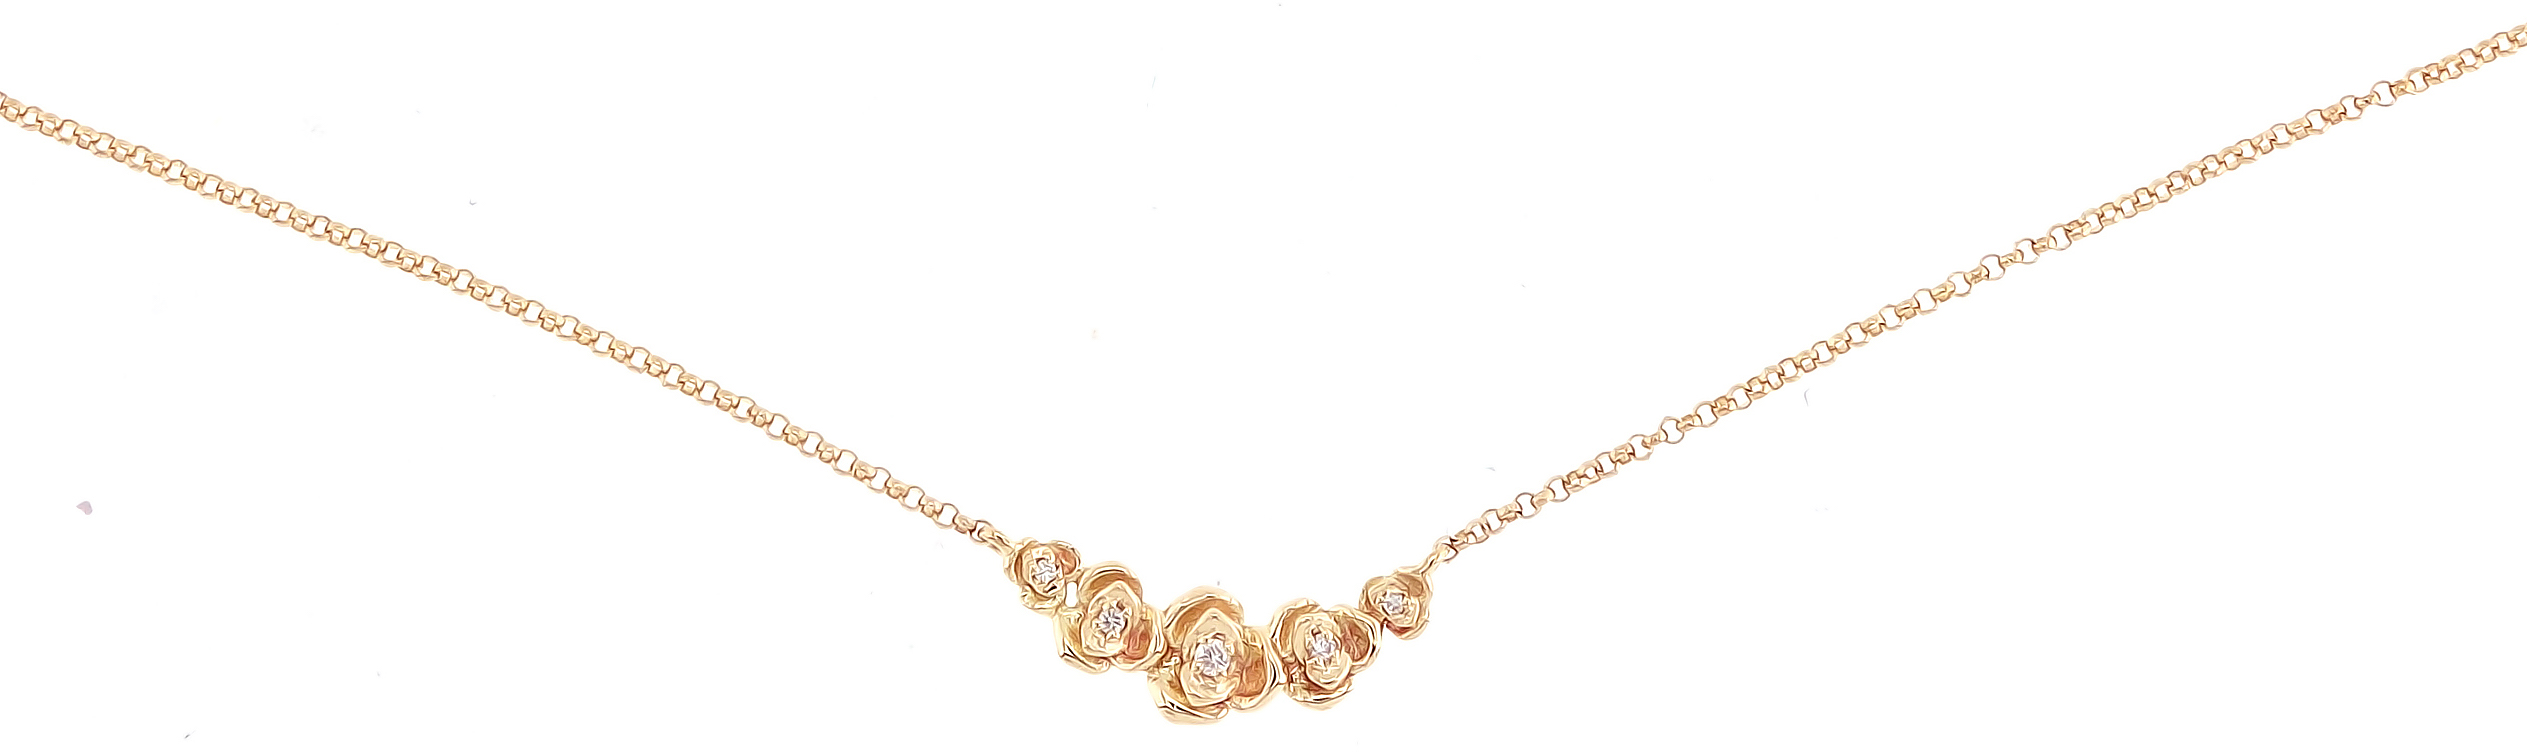 Borgioni small rose necklace | JCK On Your Market